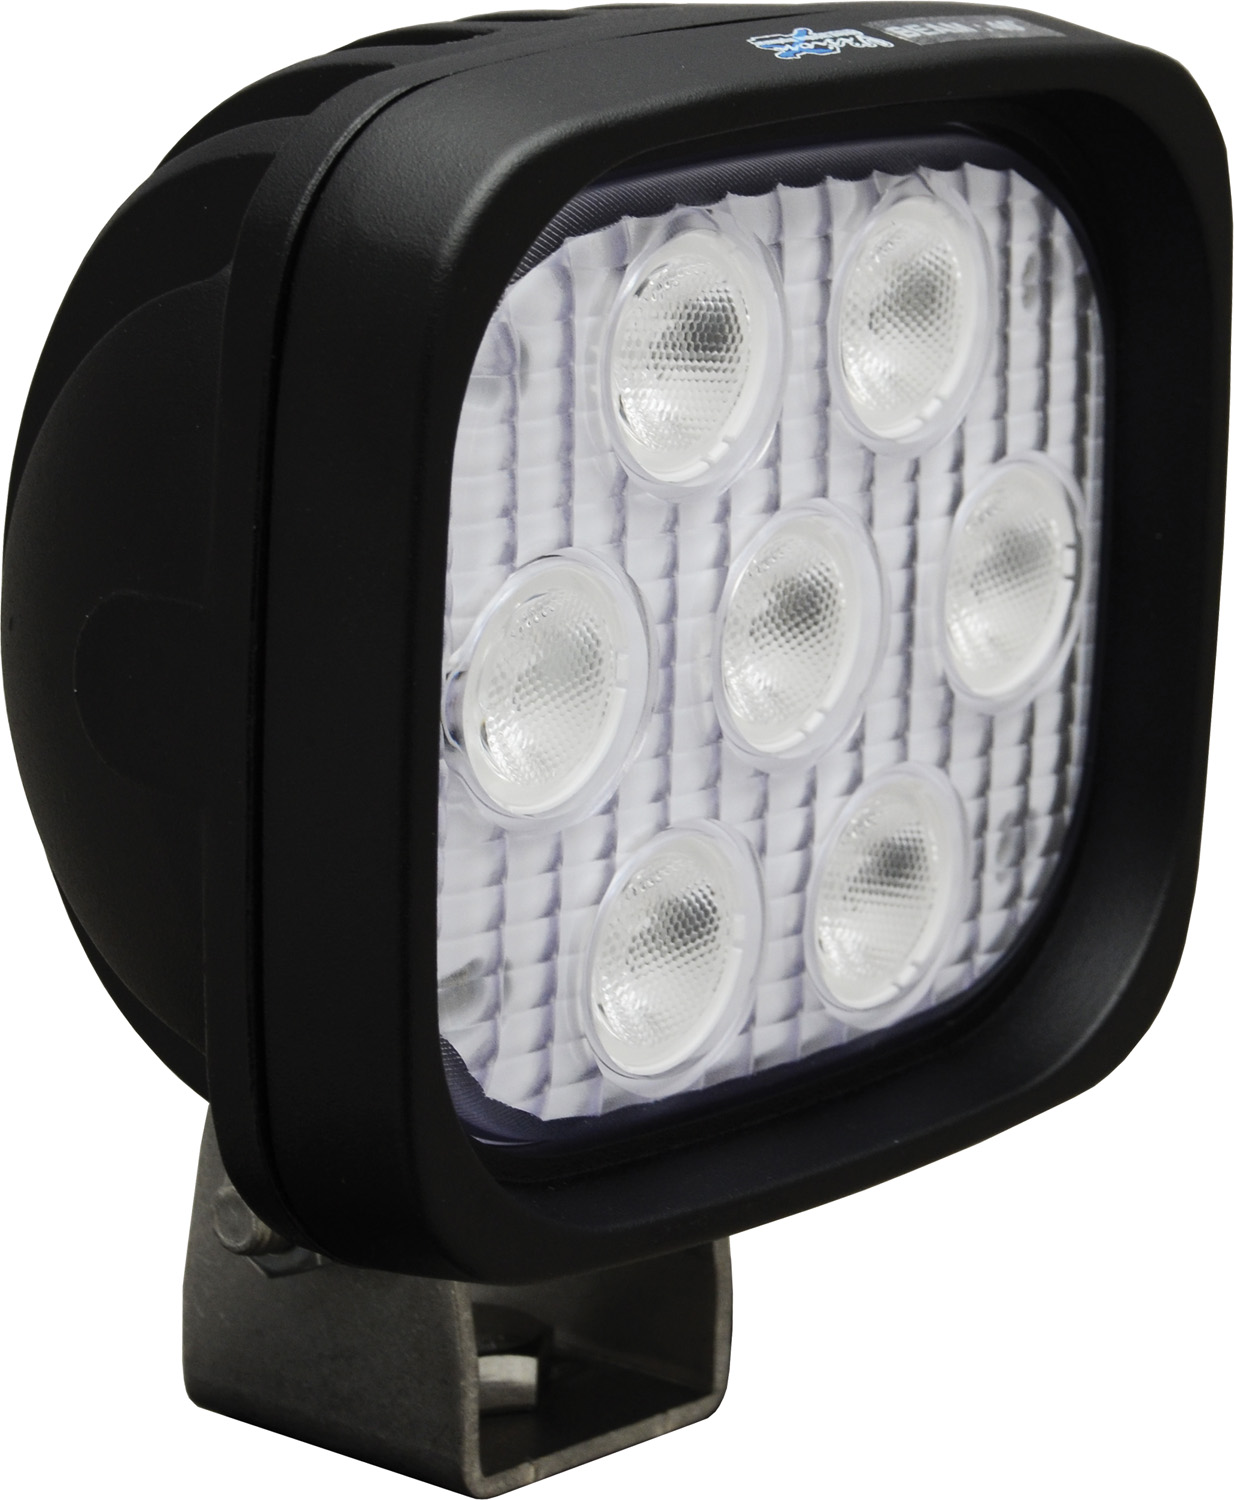 4 inch SQUARE UTILITY MARKET BLACK 7 3W AMBER LED'S 40ç WIDE